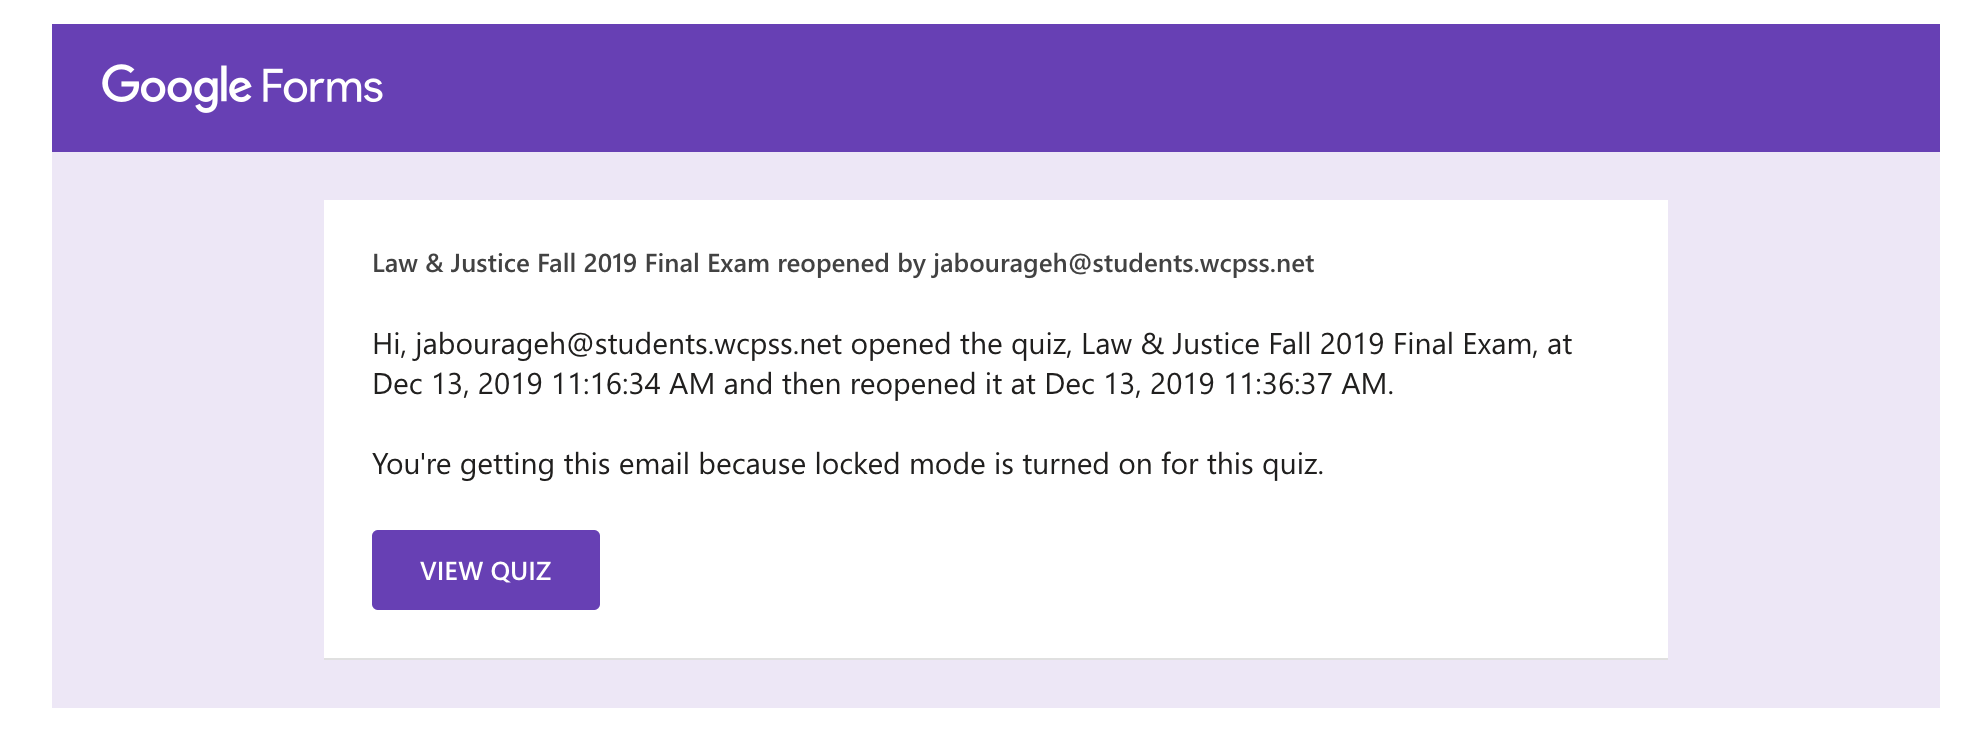 Locked Mode In Google Forms Error Respondent Did Not Complete This Assessment In Locked Mode Classroom Community